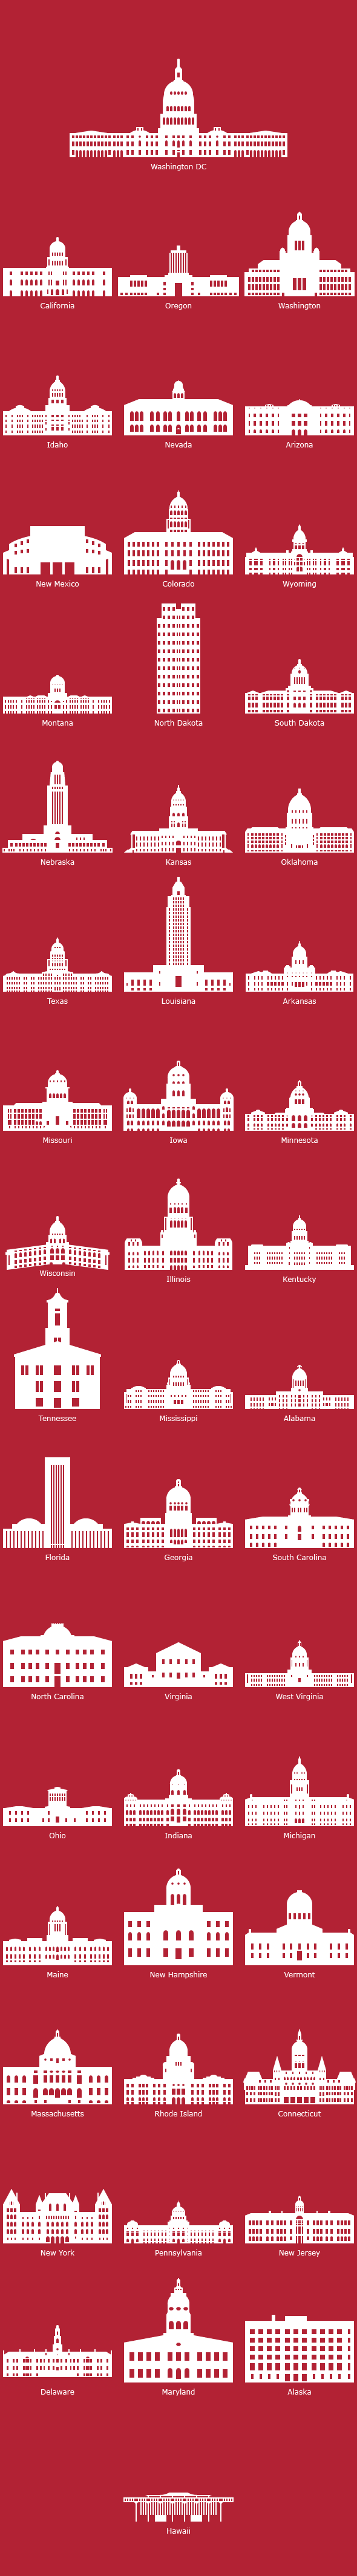 US State Capitol Buildings - silhouettes